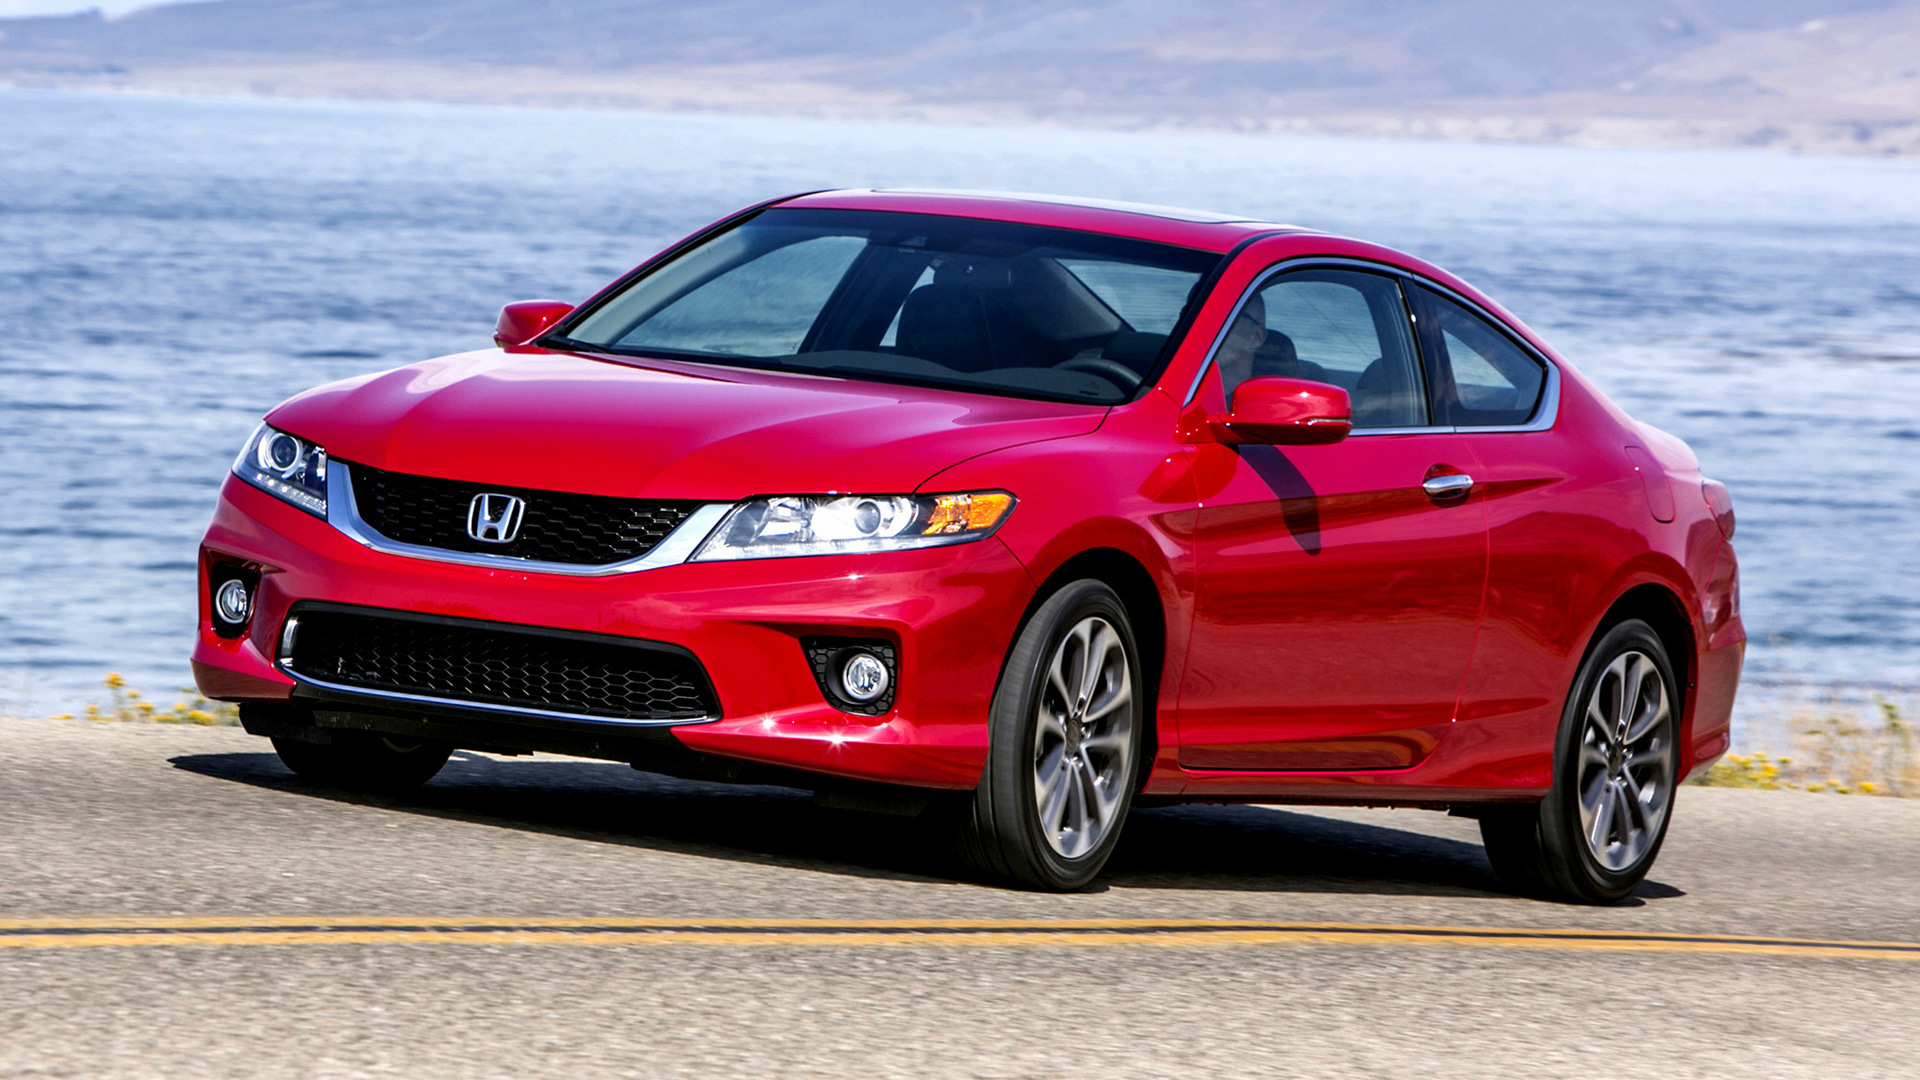 2012 Honda Accord Ex L V6 Coupe Wallpapers And Hd Images